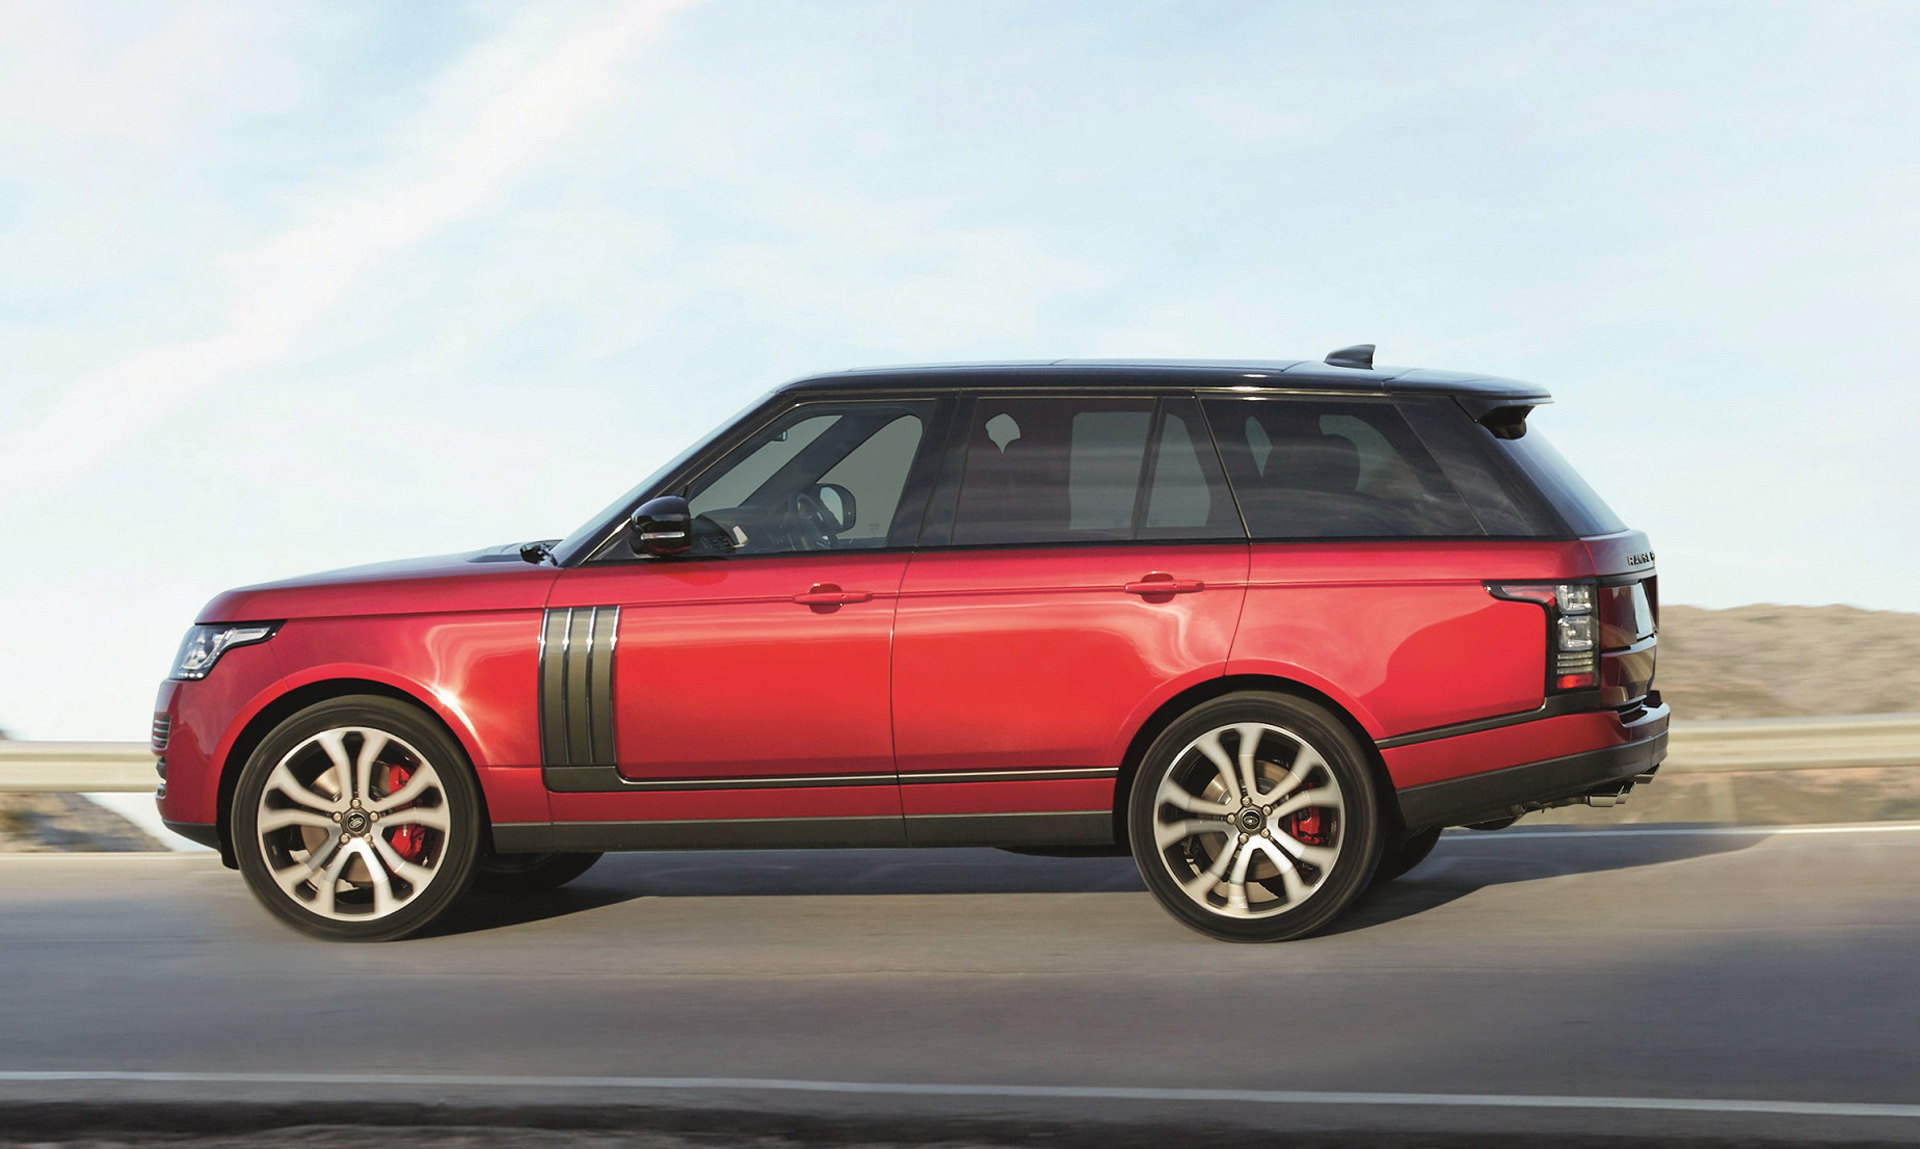 Land Rover Range Rover The Car Connection s Best Luxury Vehicle